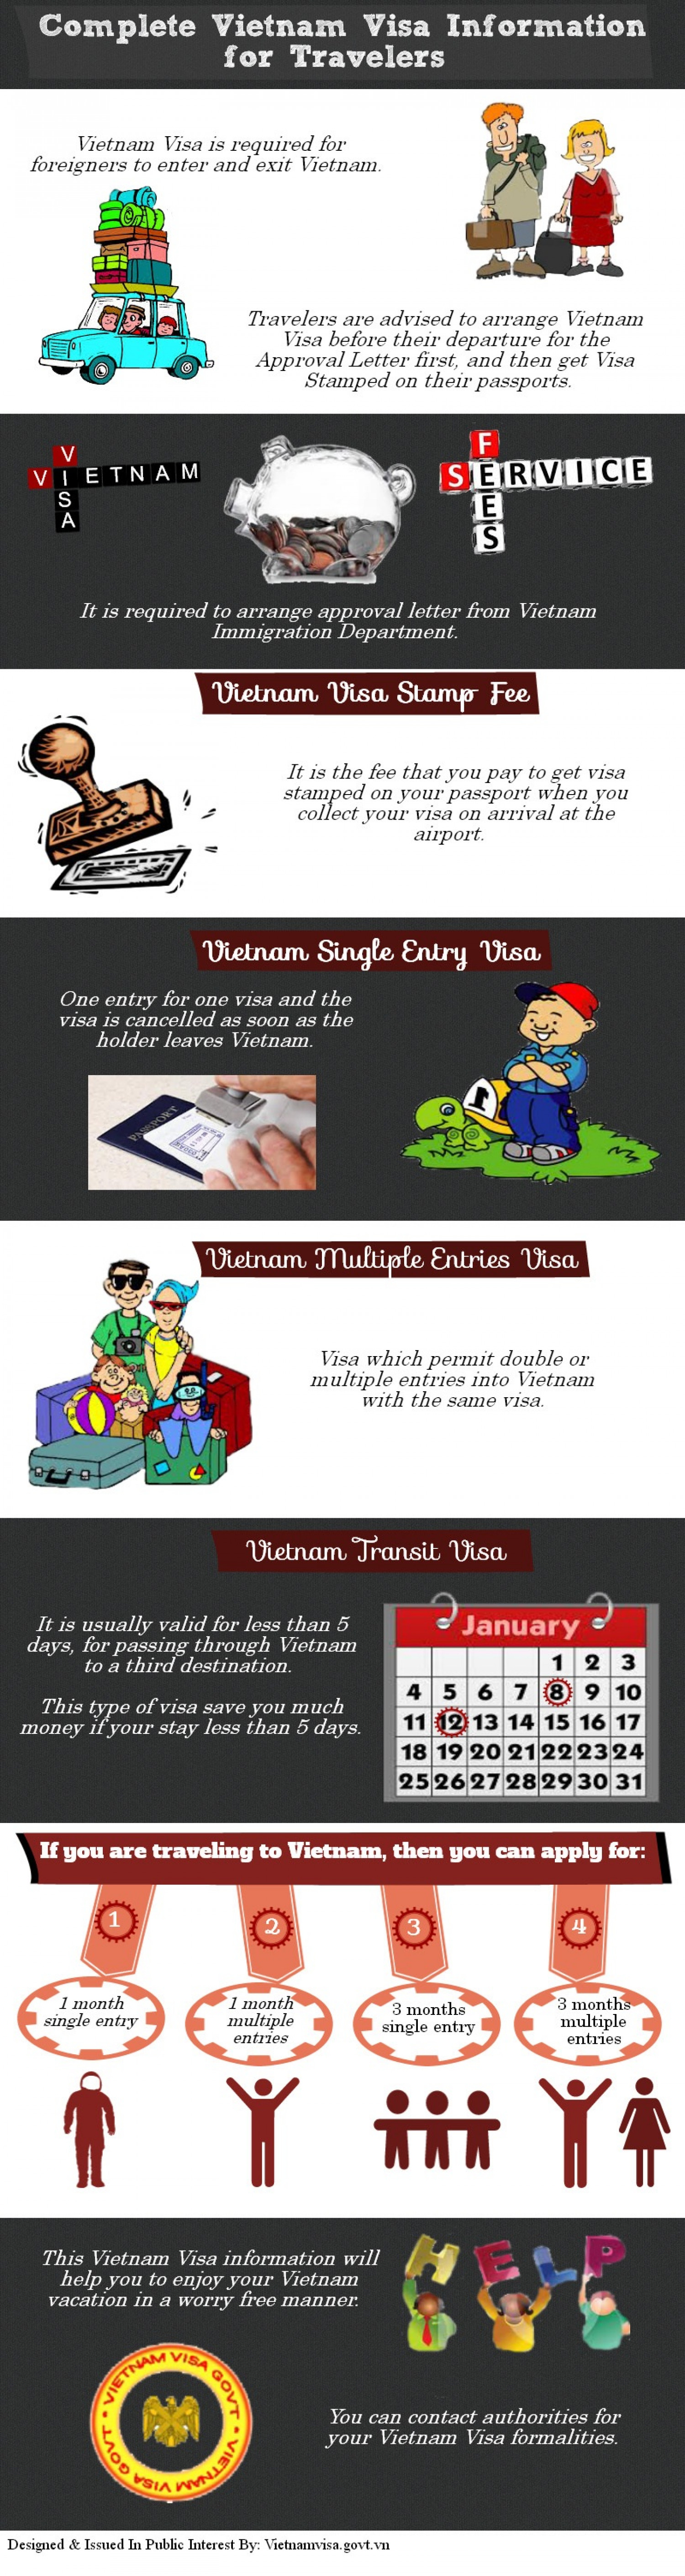 Complete Vietnam Visa Information for Travelers Infographic